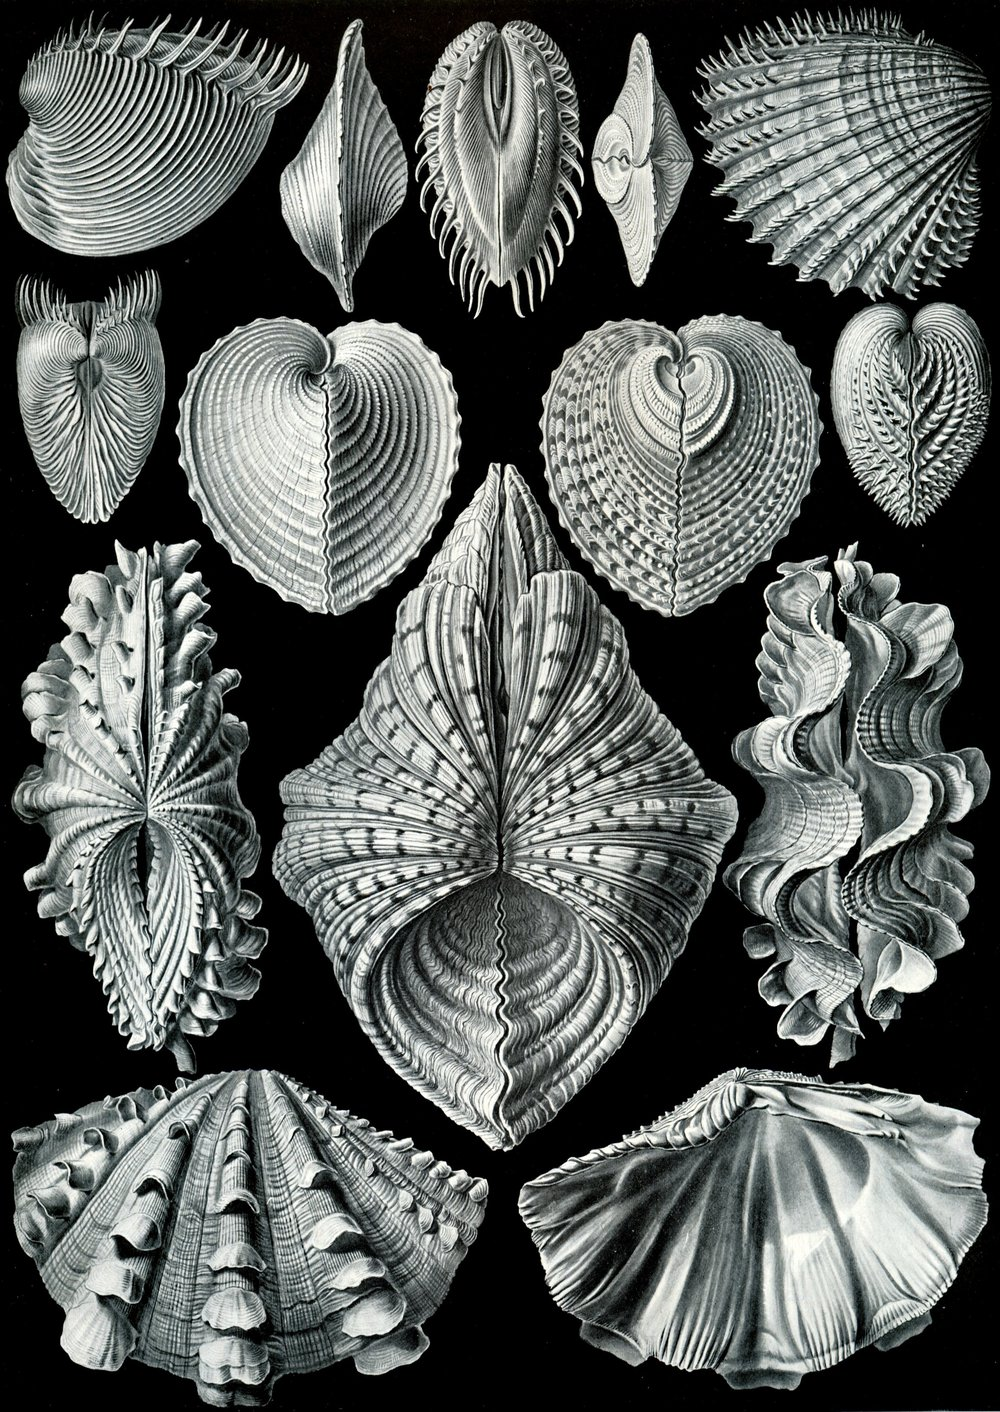 Another one of Haeckel's beautiful illustrations, this time centering on Bivalvia.   Source